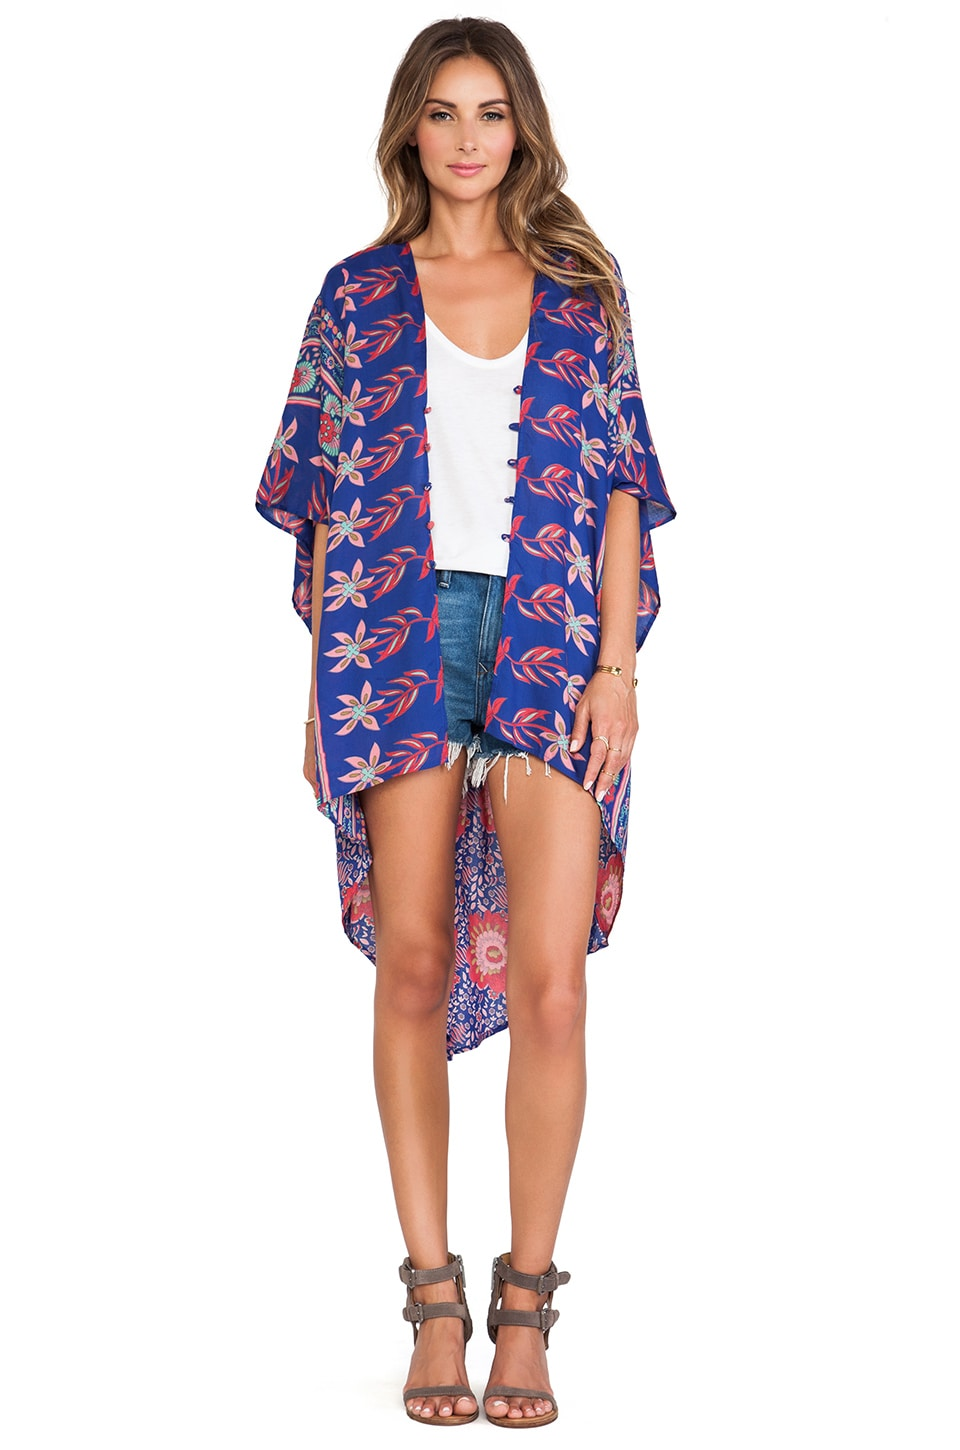 FLYNN SKYE Stevie Kimono in Thailand Dream